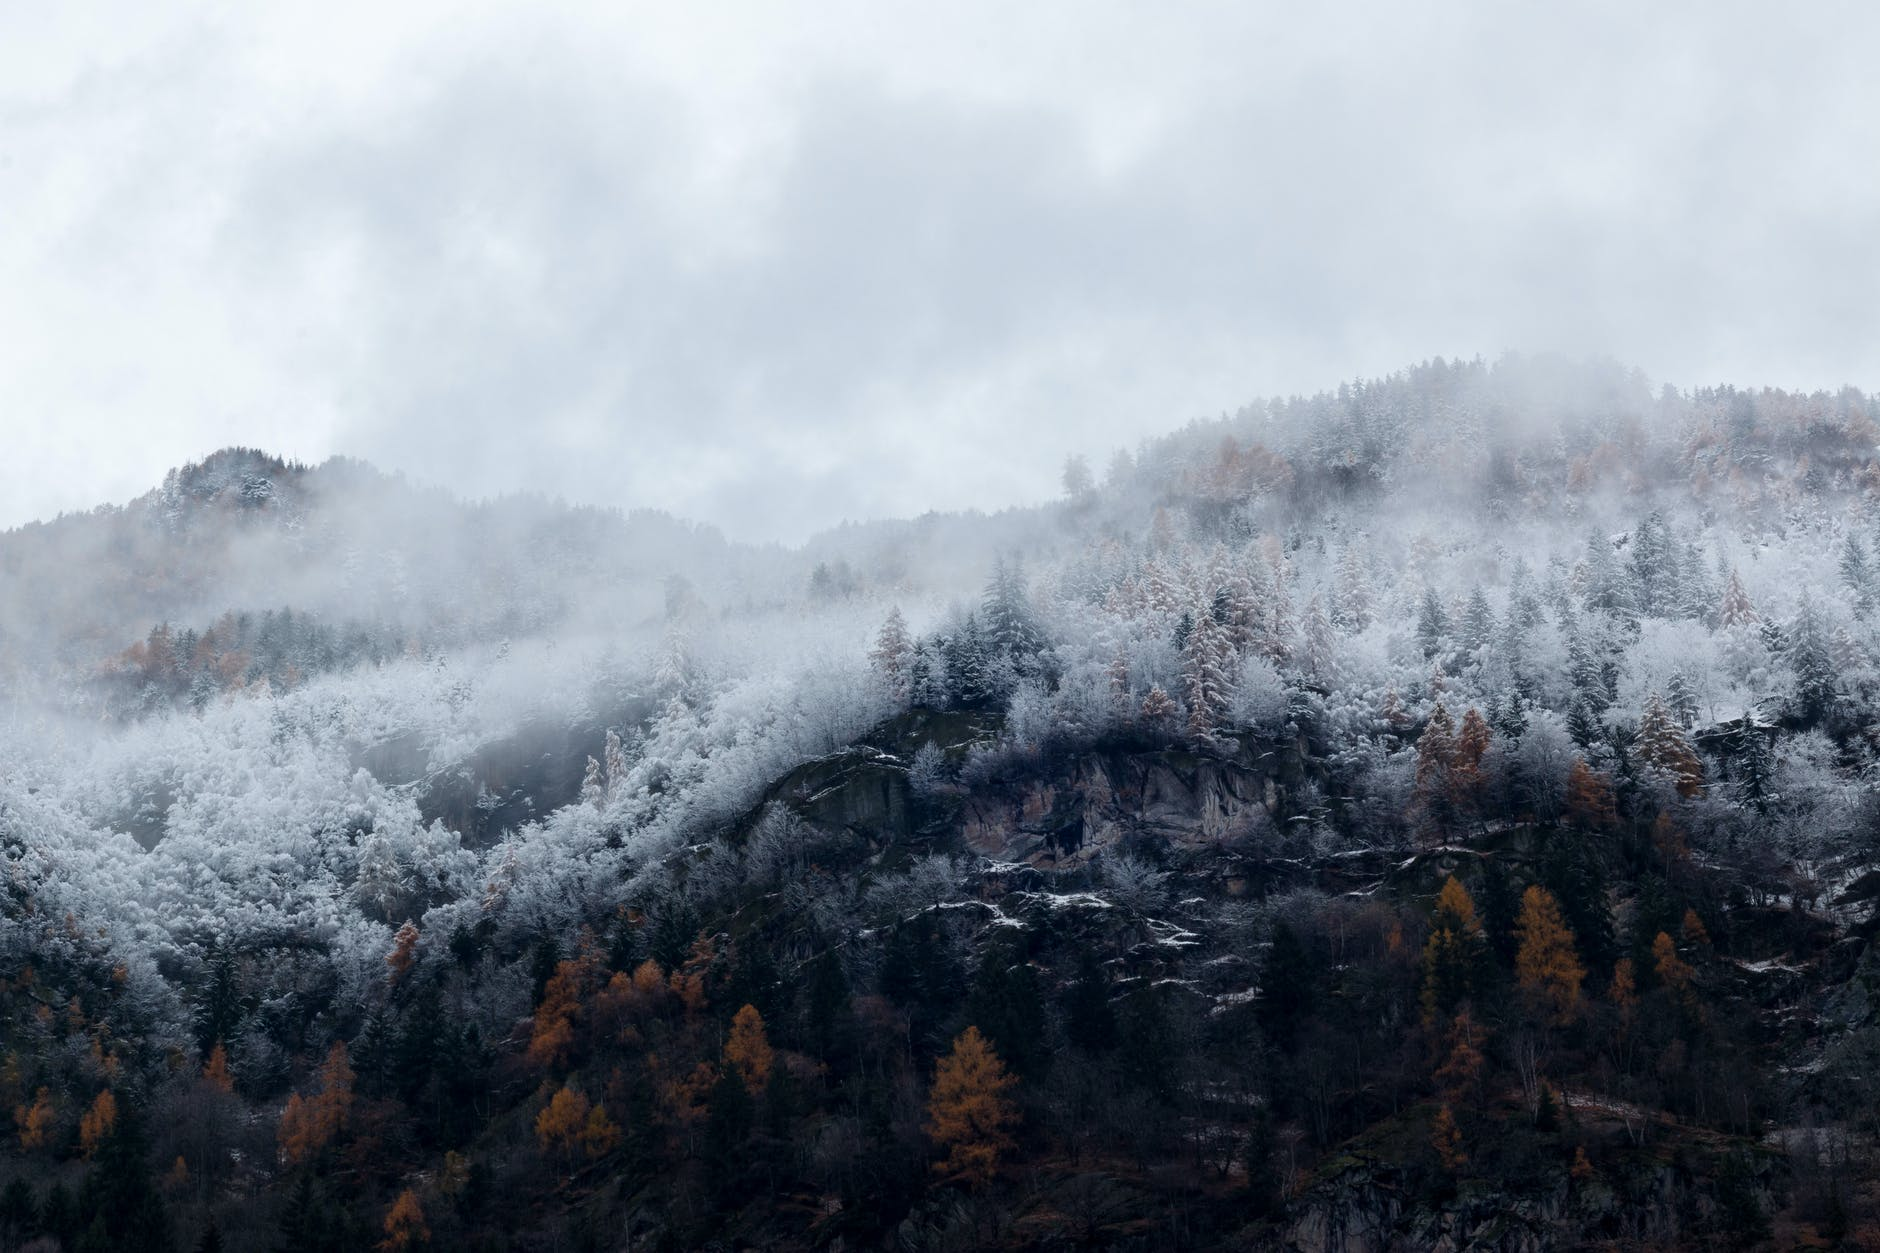 mountain surrounded by trees with snows